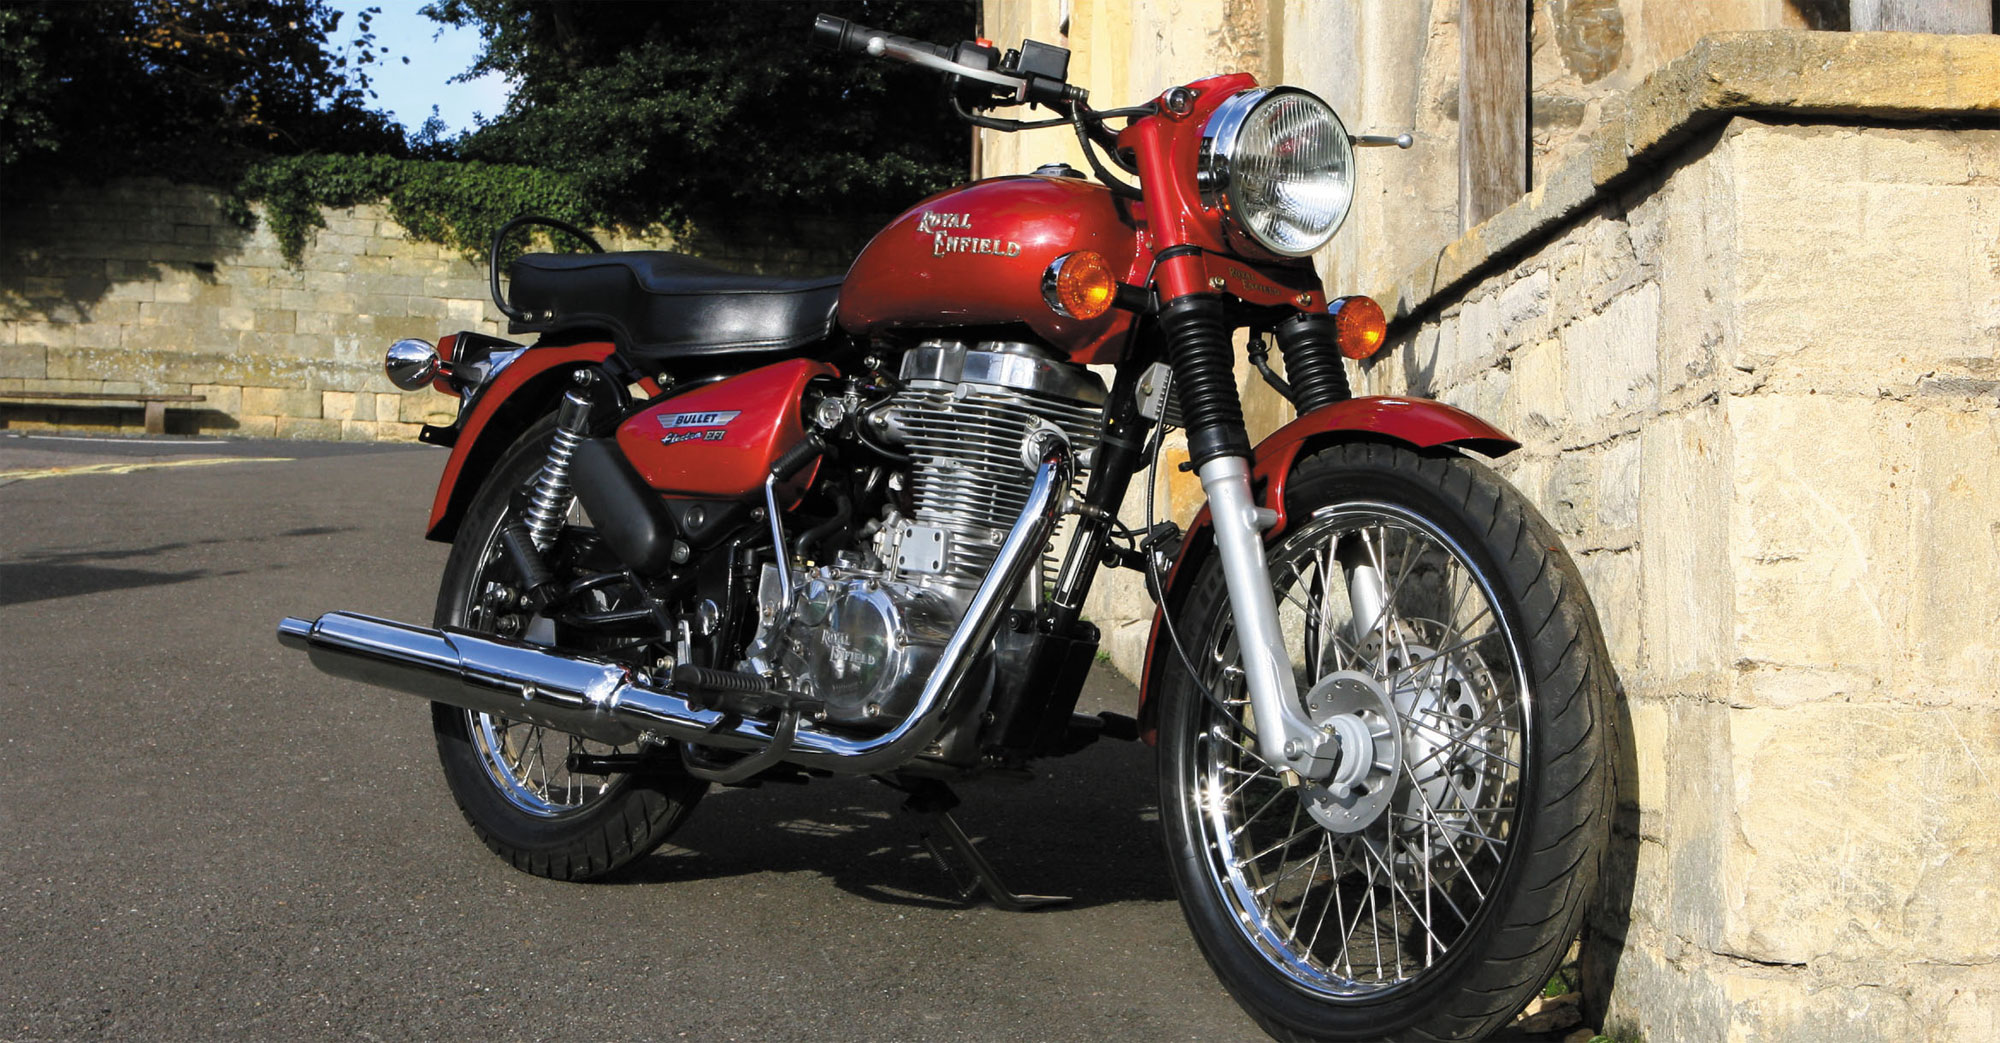 Enfield Bullet Electra #11